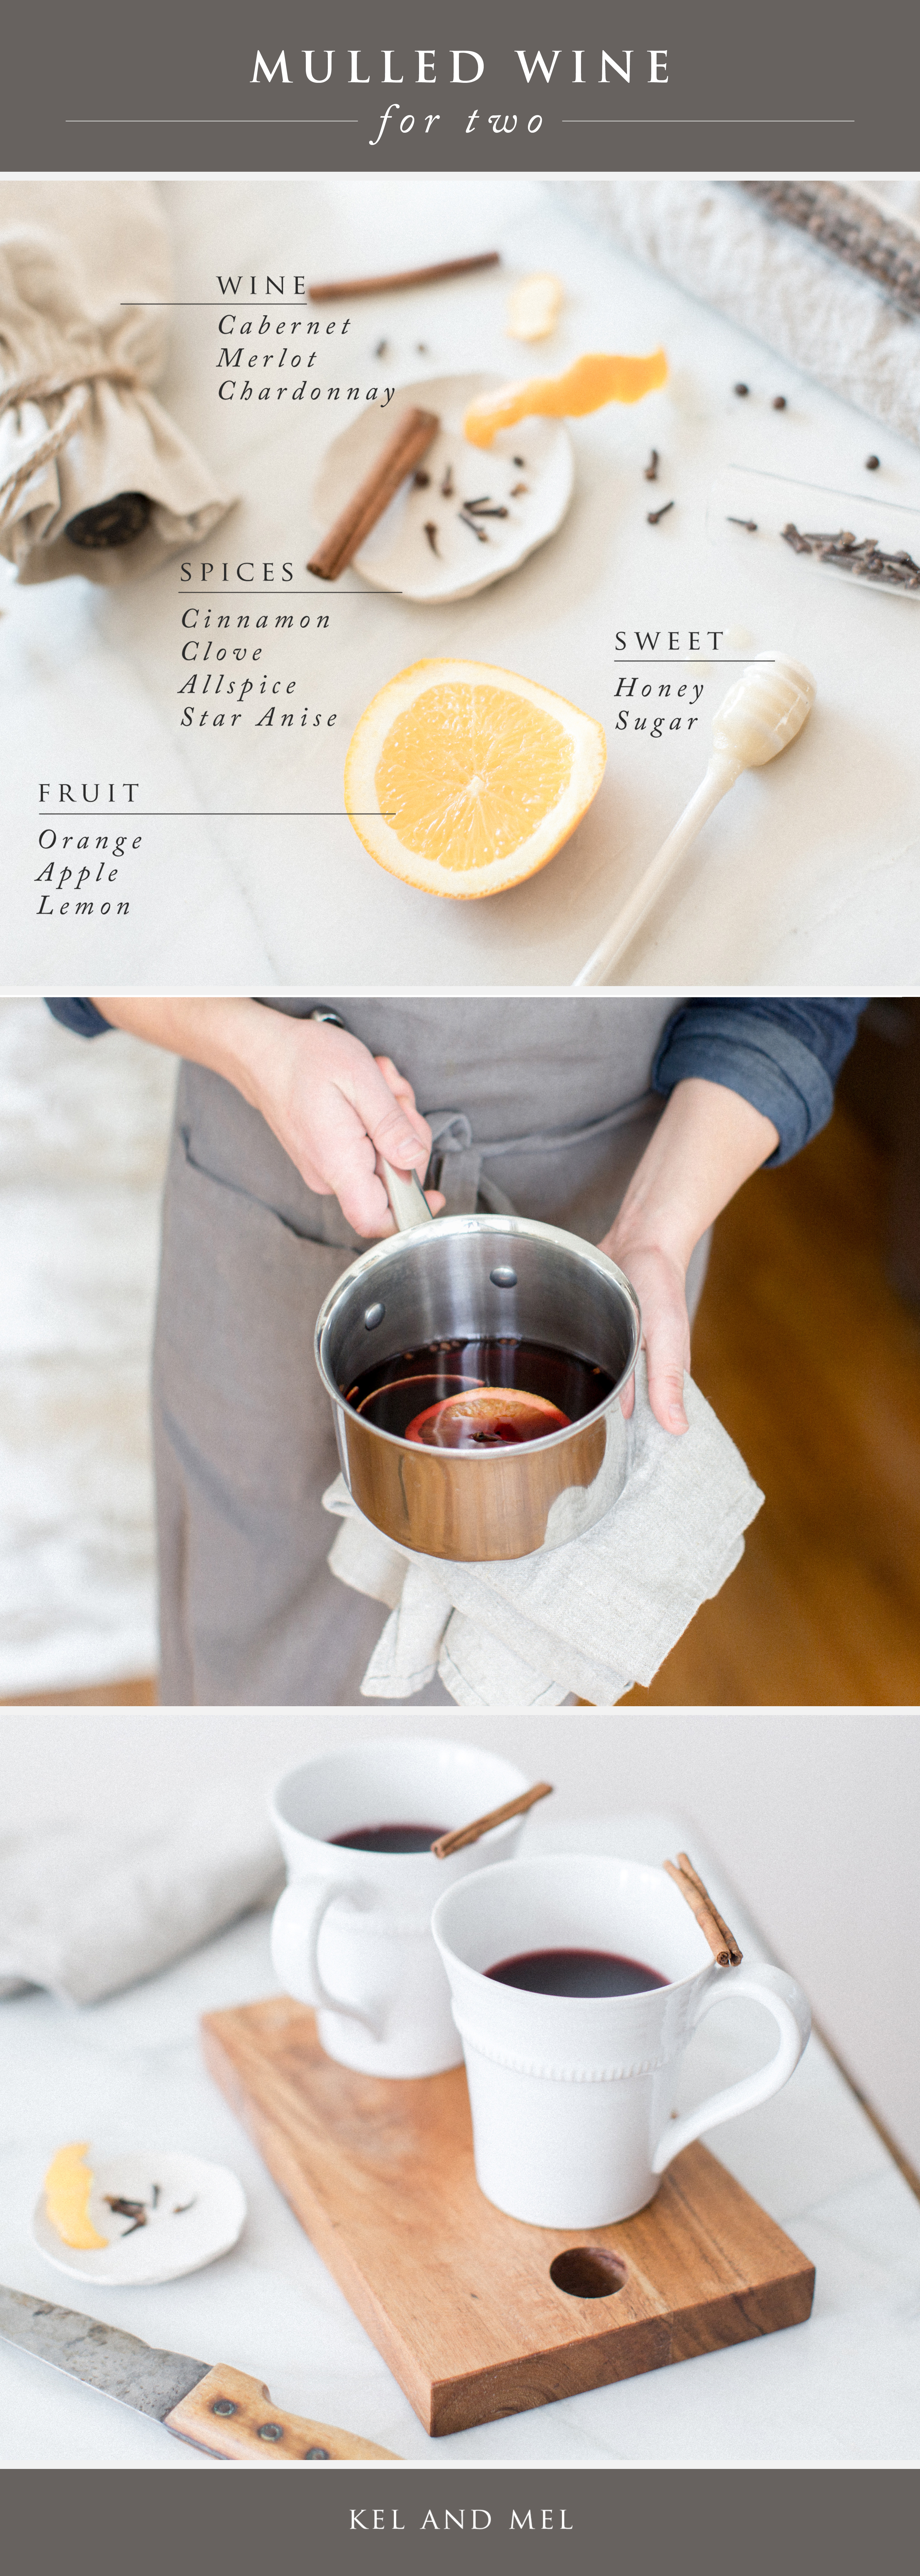 kel and mel, date night design, intentional marriage, mulled wine recipe